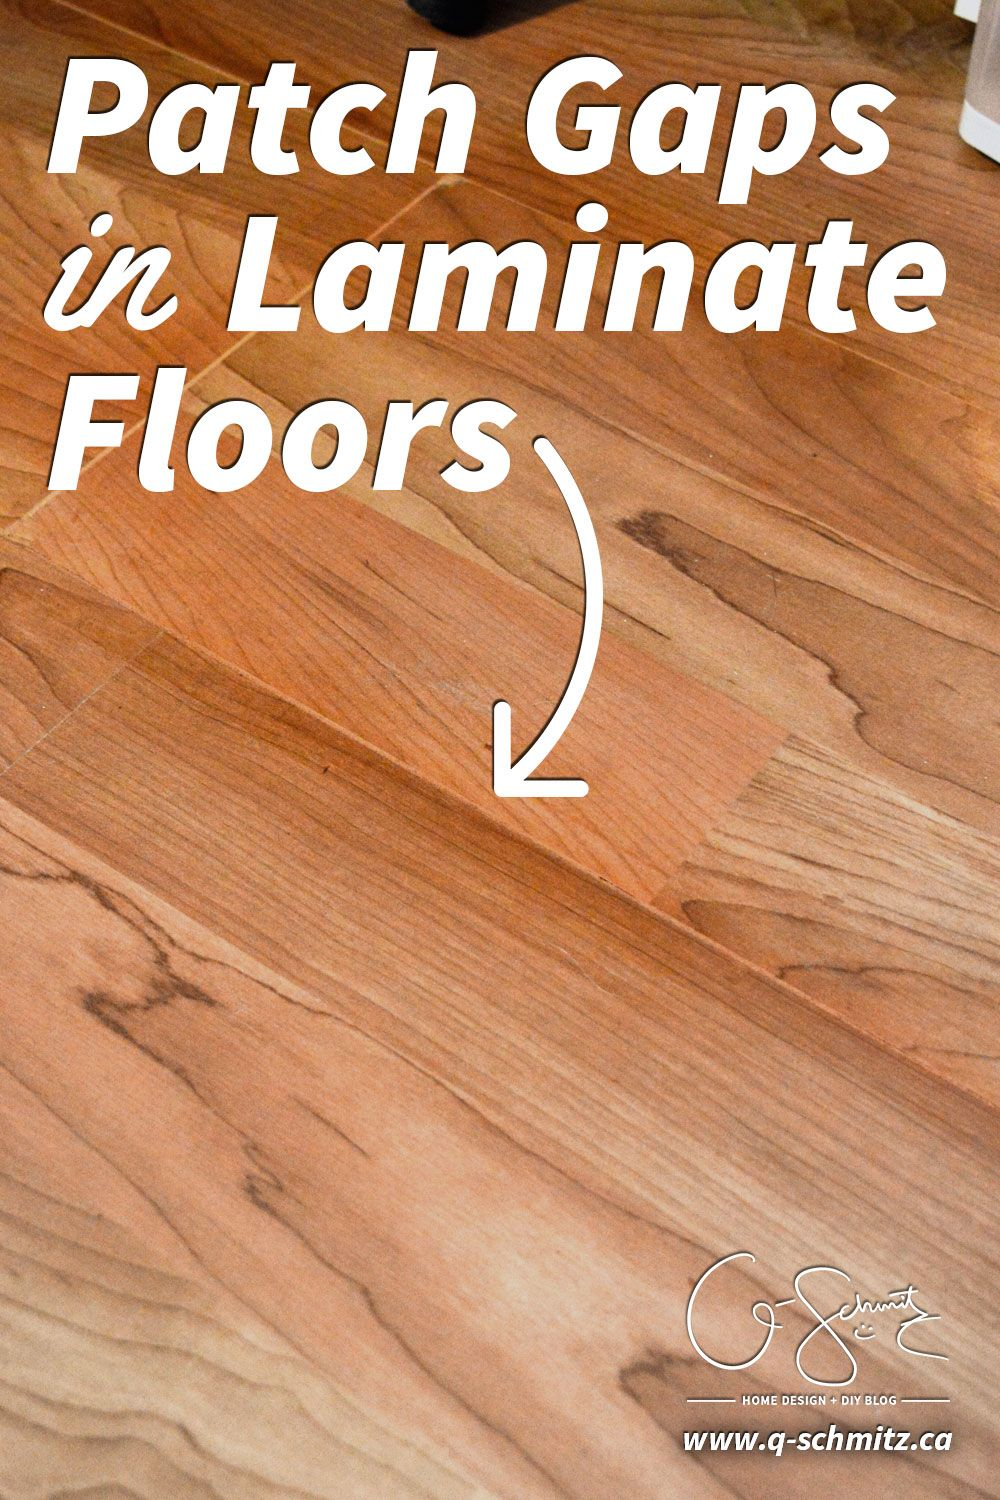 Patch Gaps In Laminate Floors Madness Method Laminate Floor Repair Laminate Flooring How To Clean Laminate Flooring